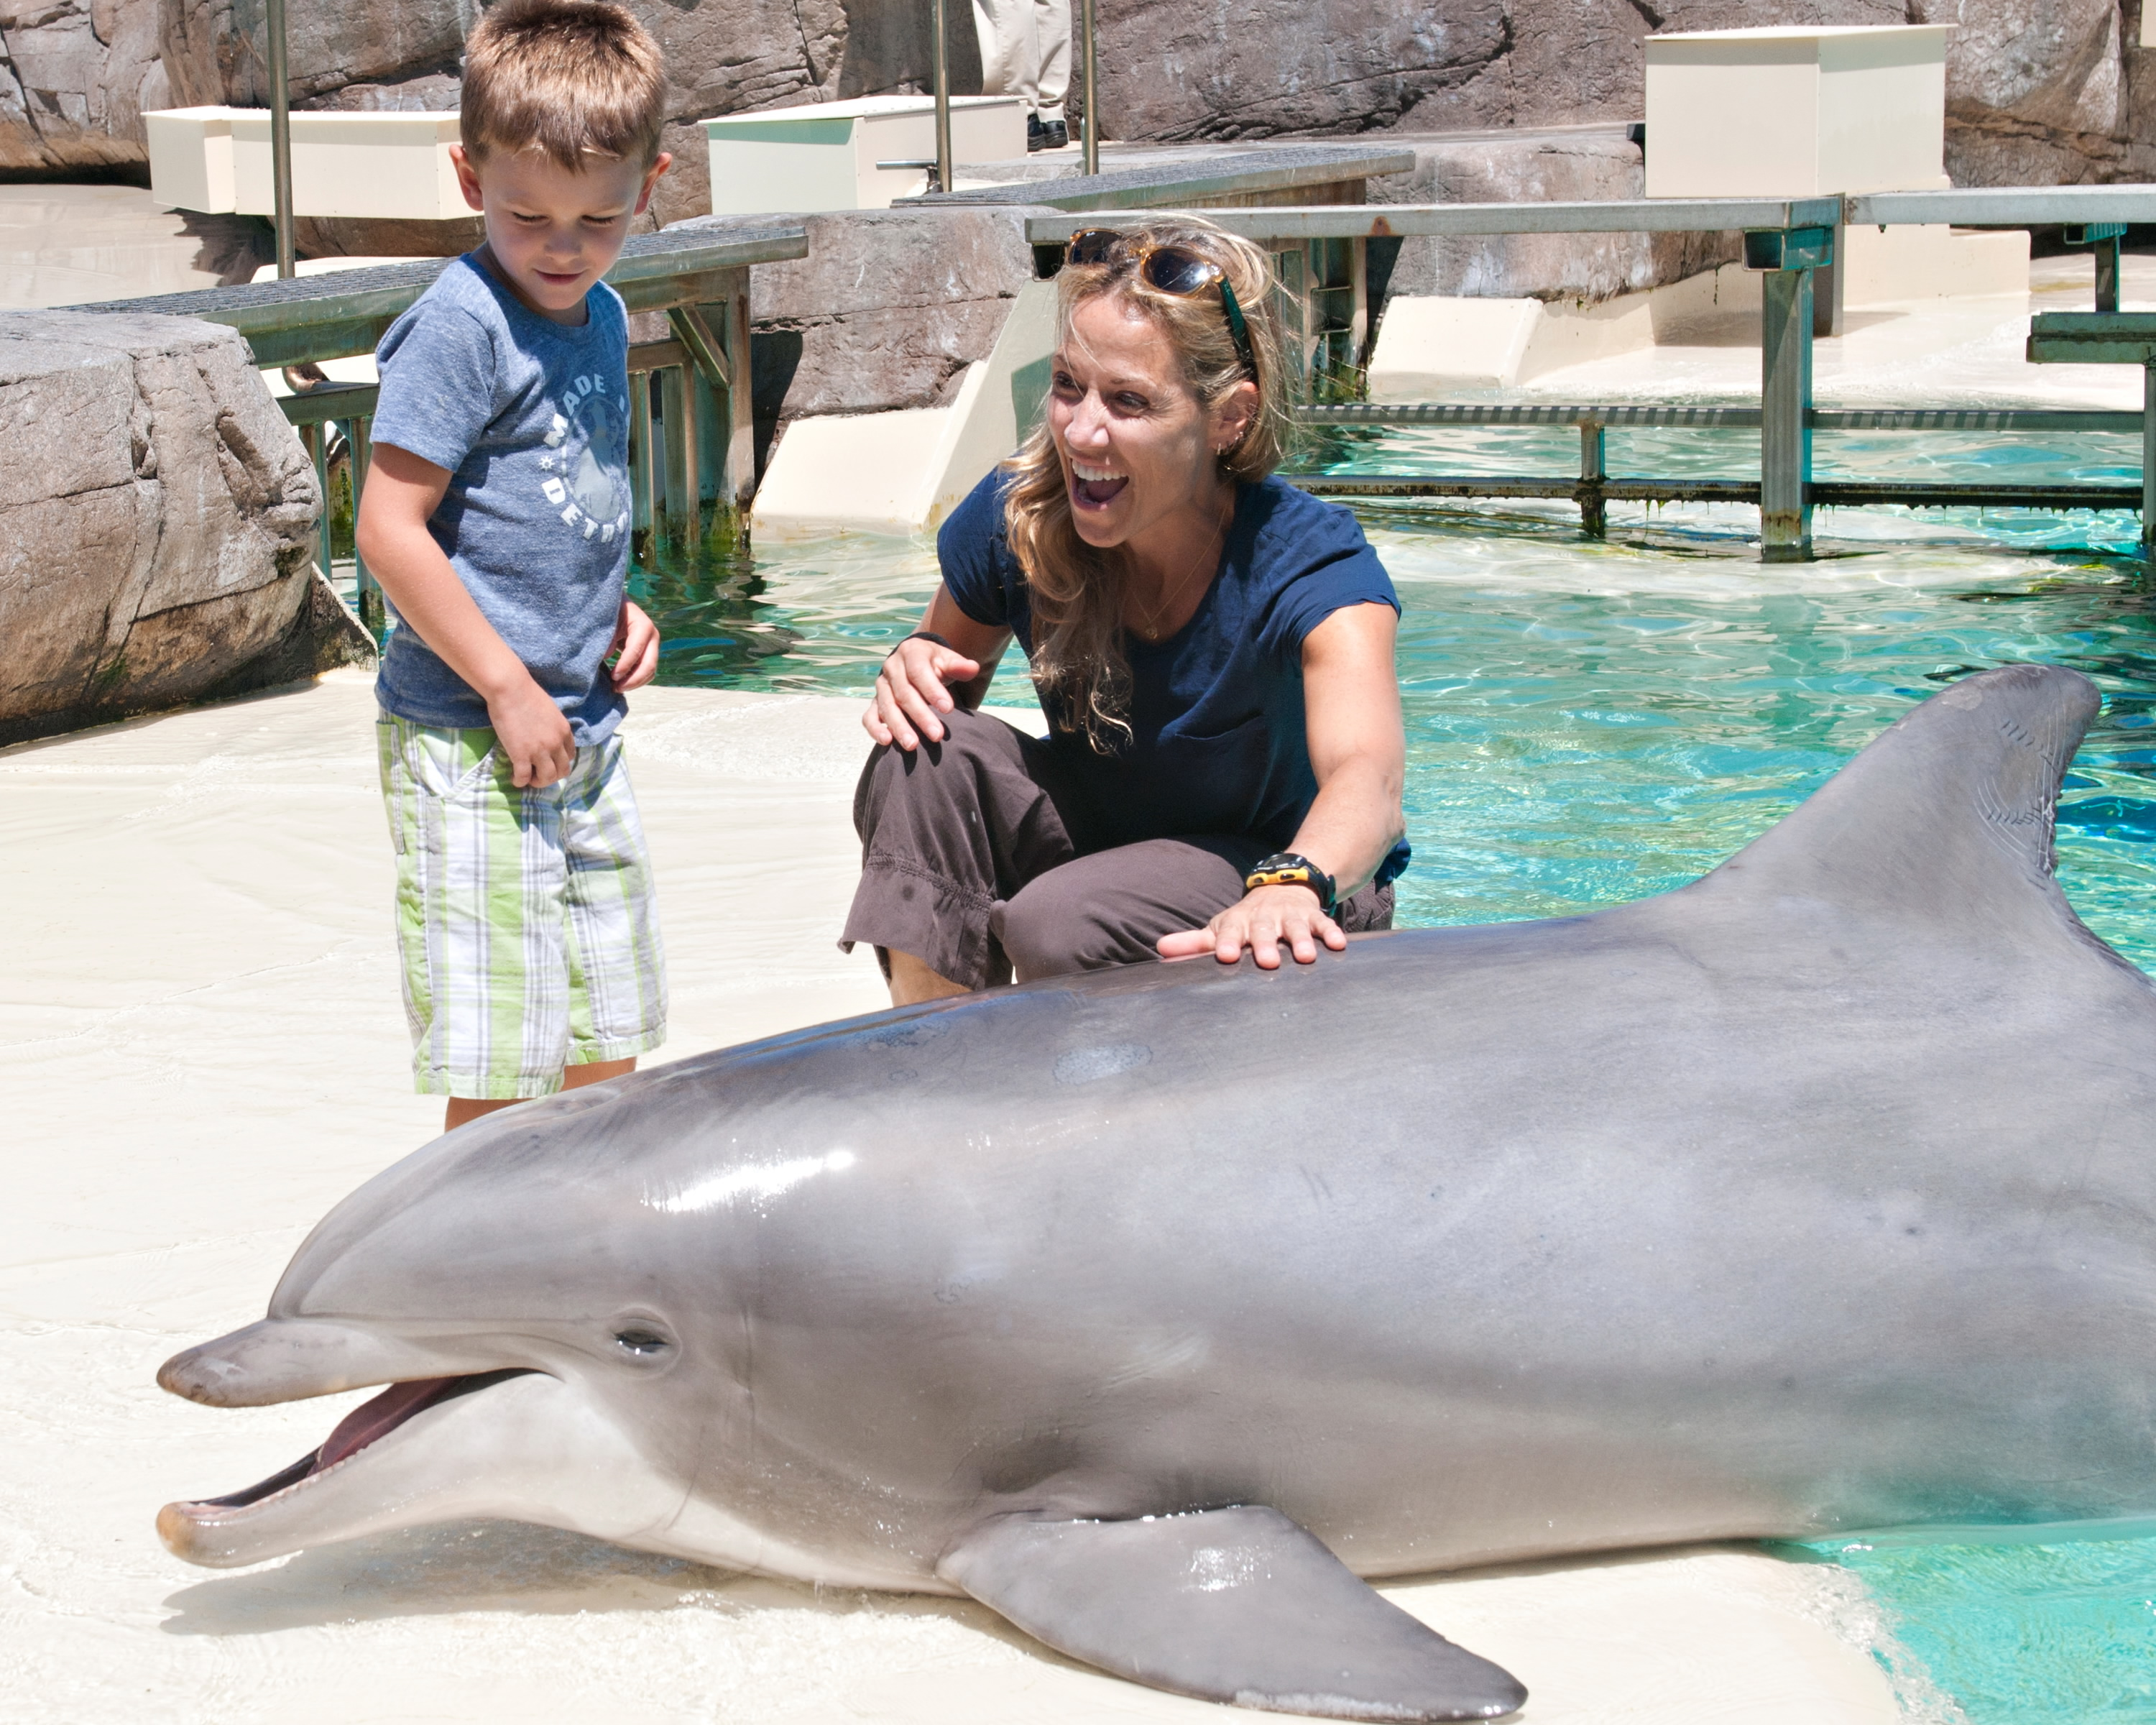 Singer/songwriter Sheryl Crow makes a new friend in Steime, a 22-year-old bottlenose dolphin, at SeaWorld San Diego on July 26, 2012 in San Diego, California. (Mike Aguilera/SeaWorld San Diego via Getty Images)